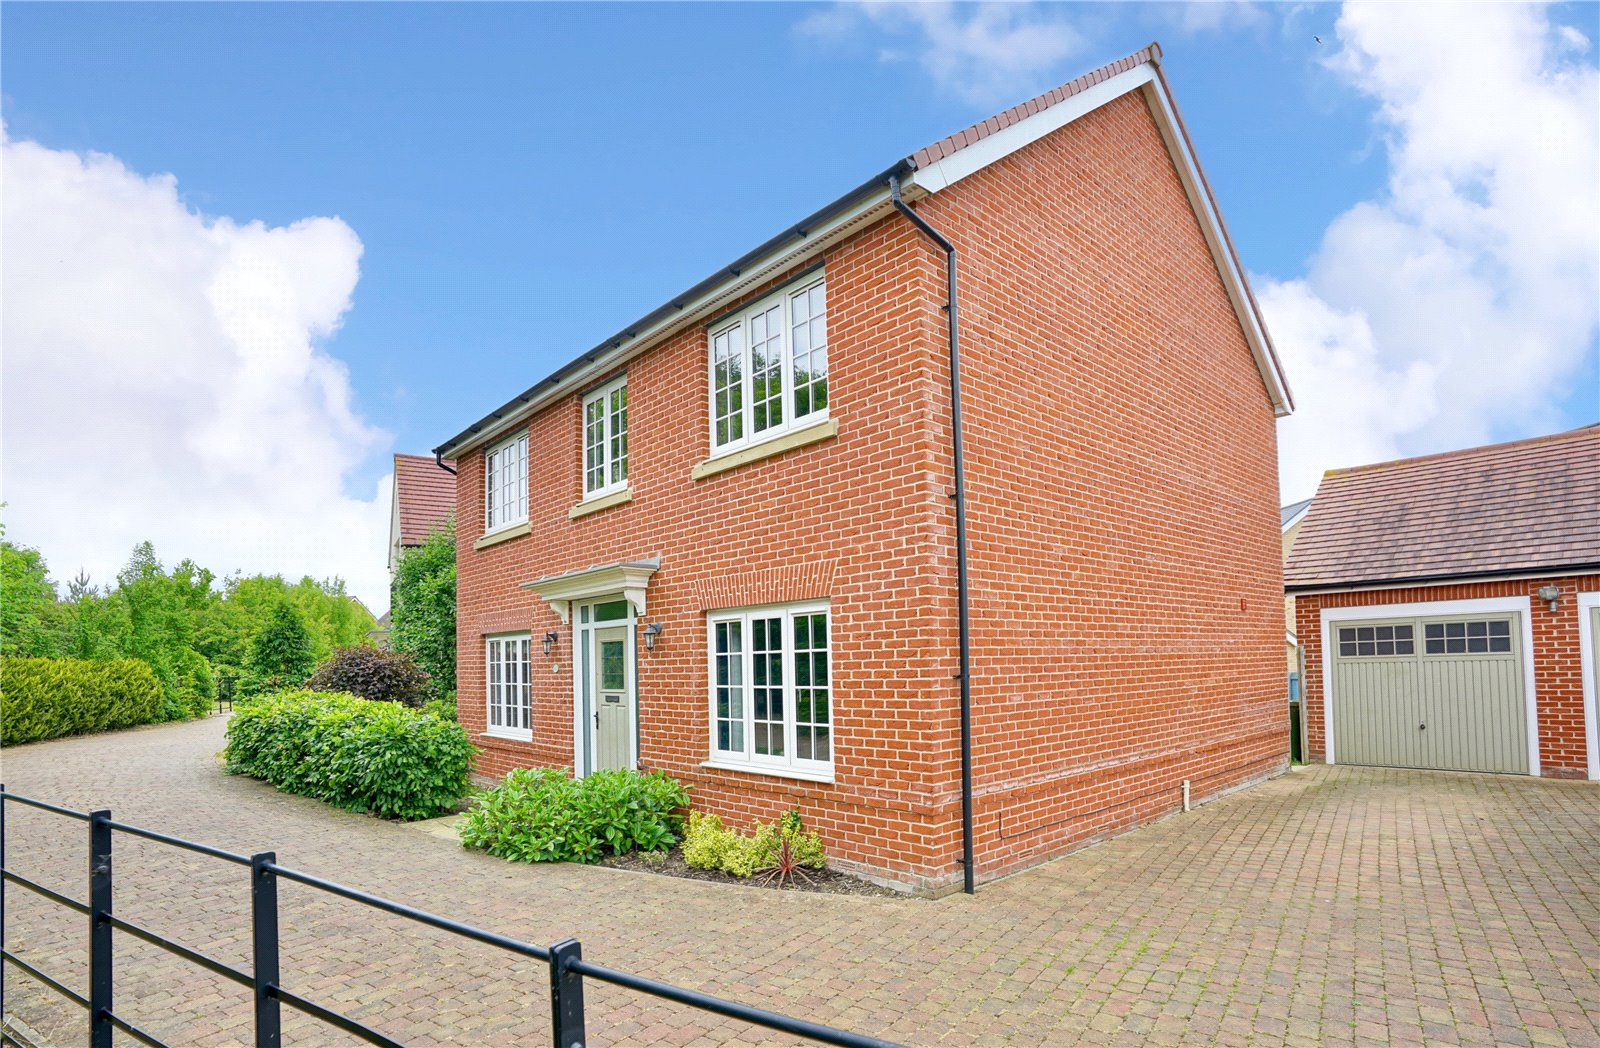 4 bed house for sale in Field Gate Close, St. Neots - Property Image 1